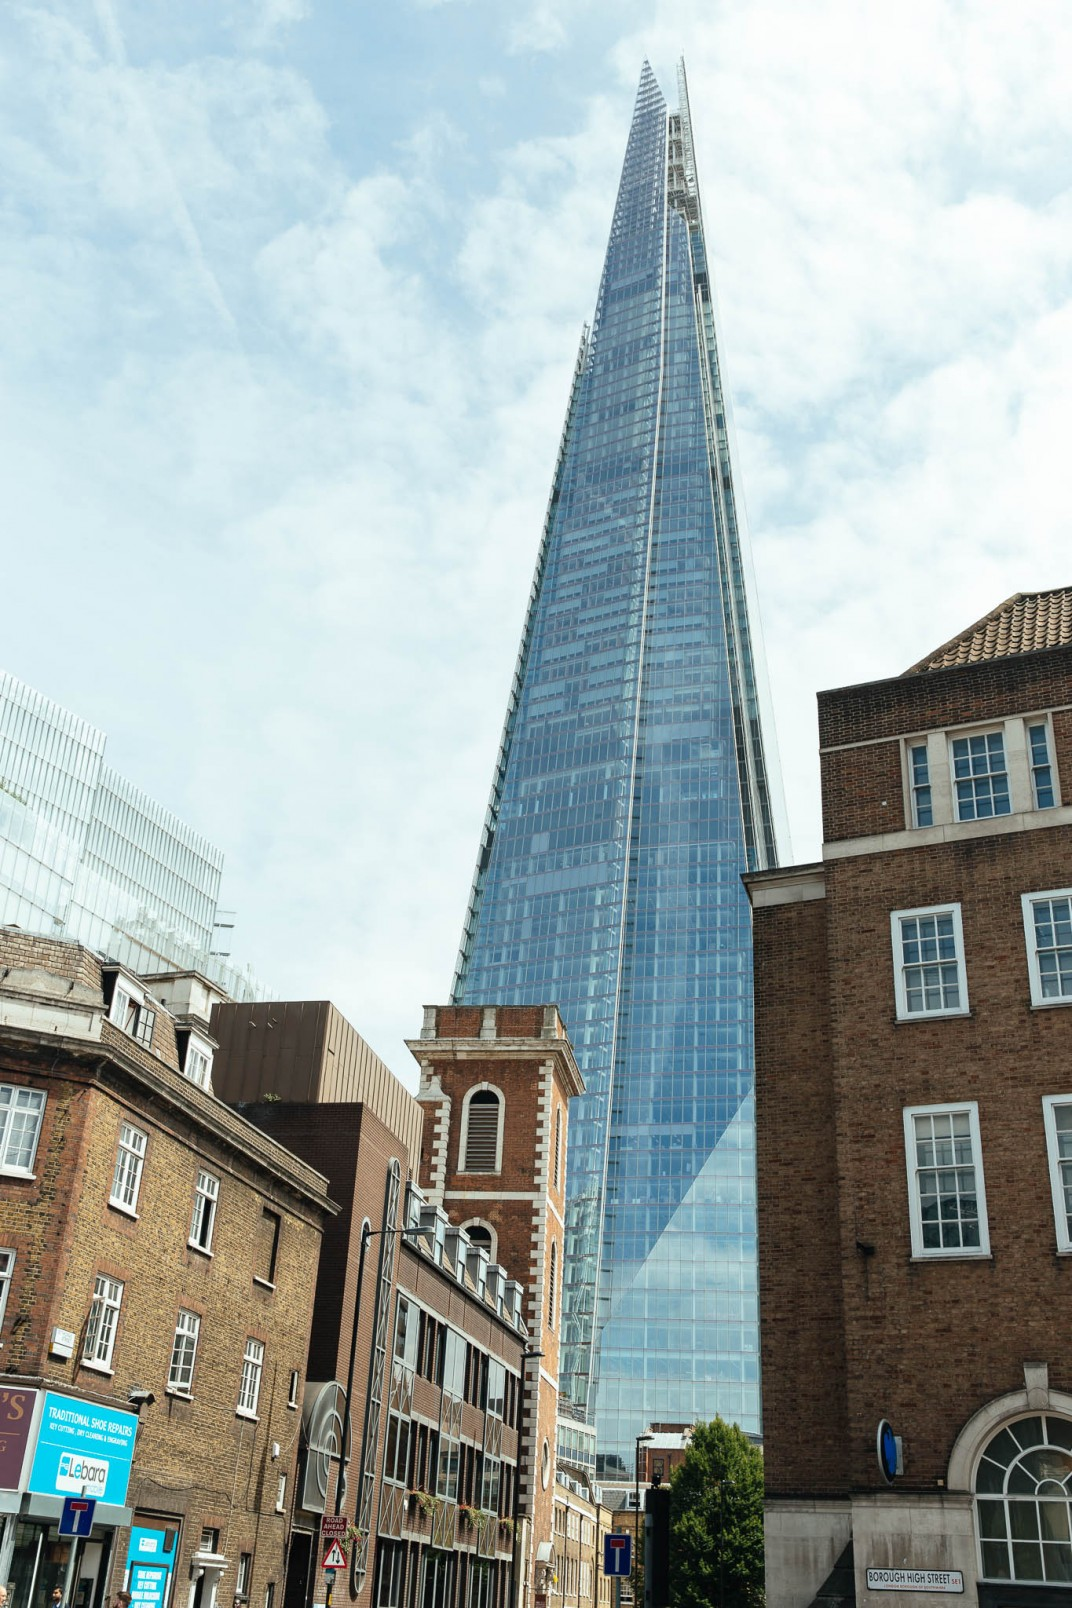 Images for London Bridge Street, London Bridge, SE1 9SG EAID:3928049530 BID:2